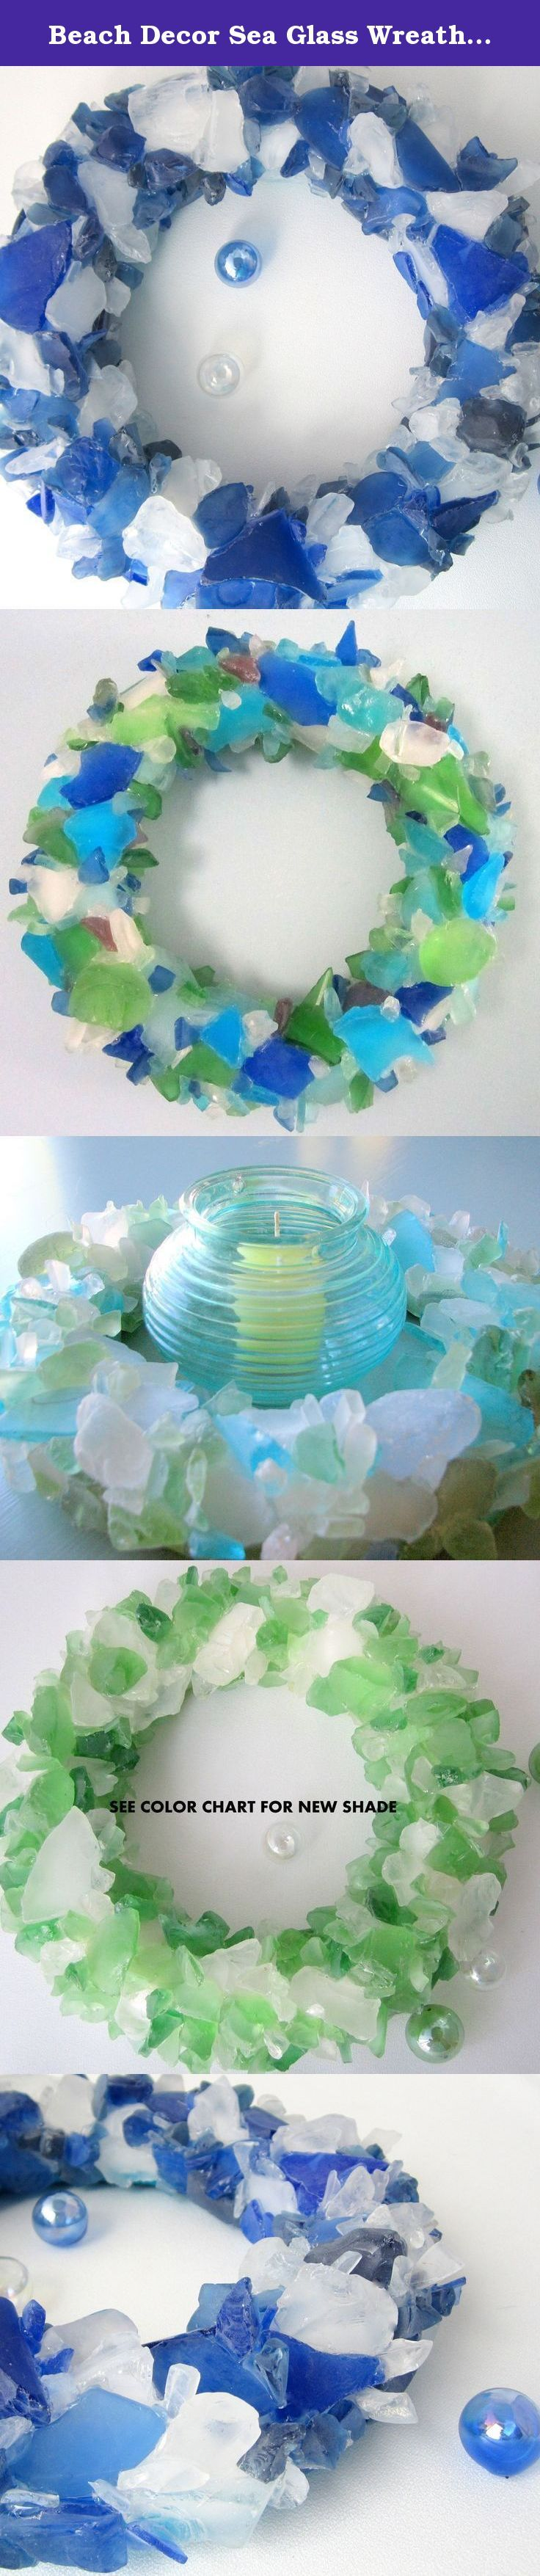 """Beach Decor Sea Glass Wreath - Nautical Beach Glass Wreath in Any Color - 12"""". Beach decor sea glass wreath. My nautical decor beach glass wreath is sparkly and gorgeous for your wall or table centerpiece surrounding a candle. 12"""" overall and made with custom shades in any combination you'd like. Layers of sea glass are meticulously adhered with industrial adhesive until the face and most of the sides are fully covered. The back portion that lies against the wall is not finished with…"""